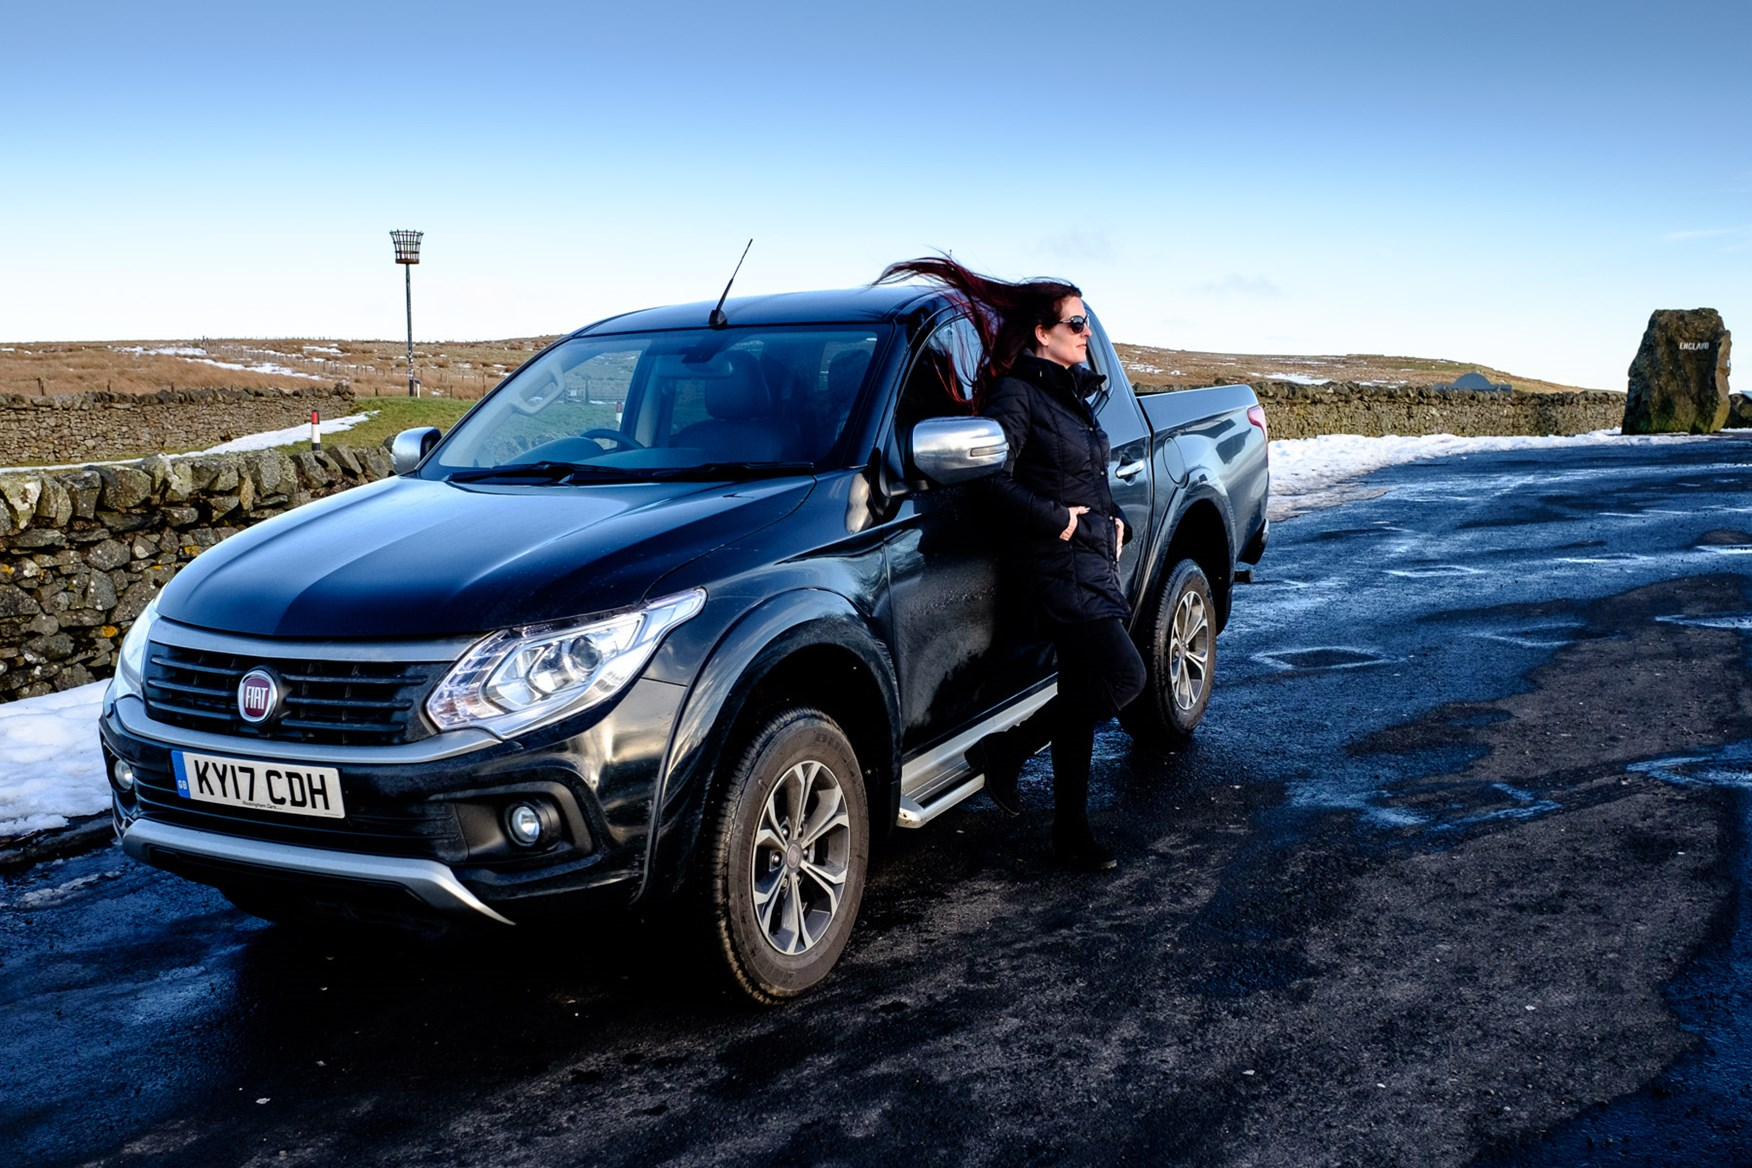 Fiat Fullback Lx Long Term Test Review Visits The Rugby Pickup Truck 2017 At Scottish Border